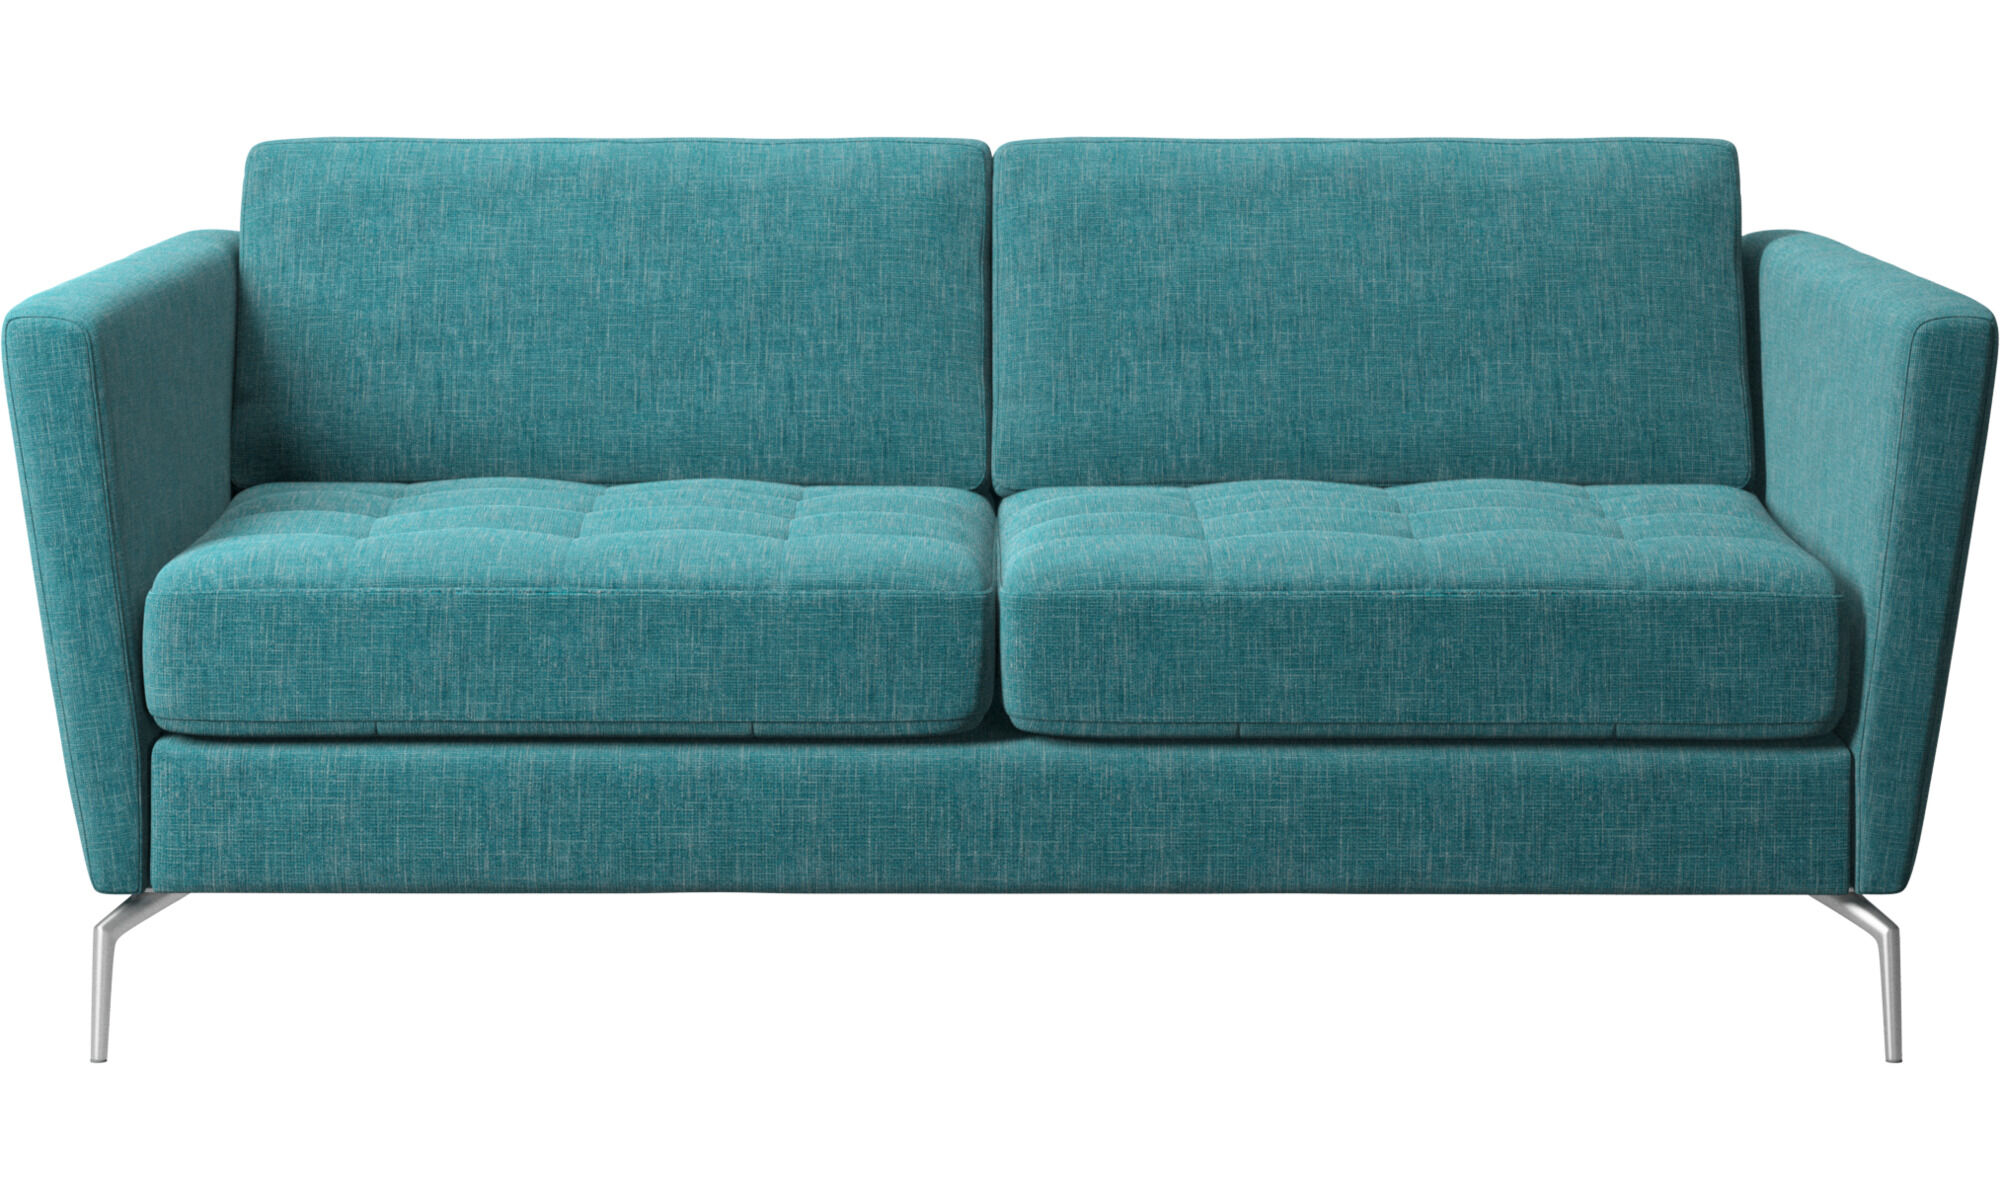 2 seater sofas - Osaka sofa tufted seat - Blue - Fabric  sc 1 st  BoConcept & Modern 2 seater sofas - Quality from BoConcept